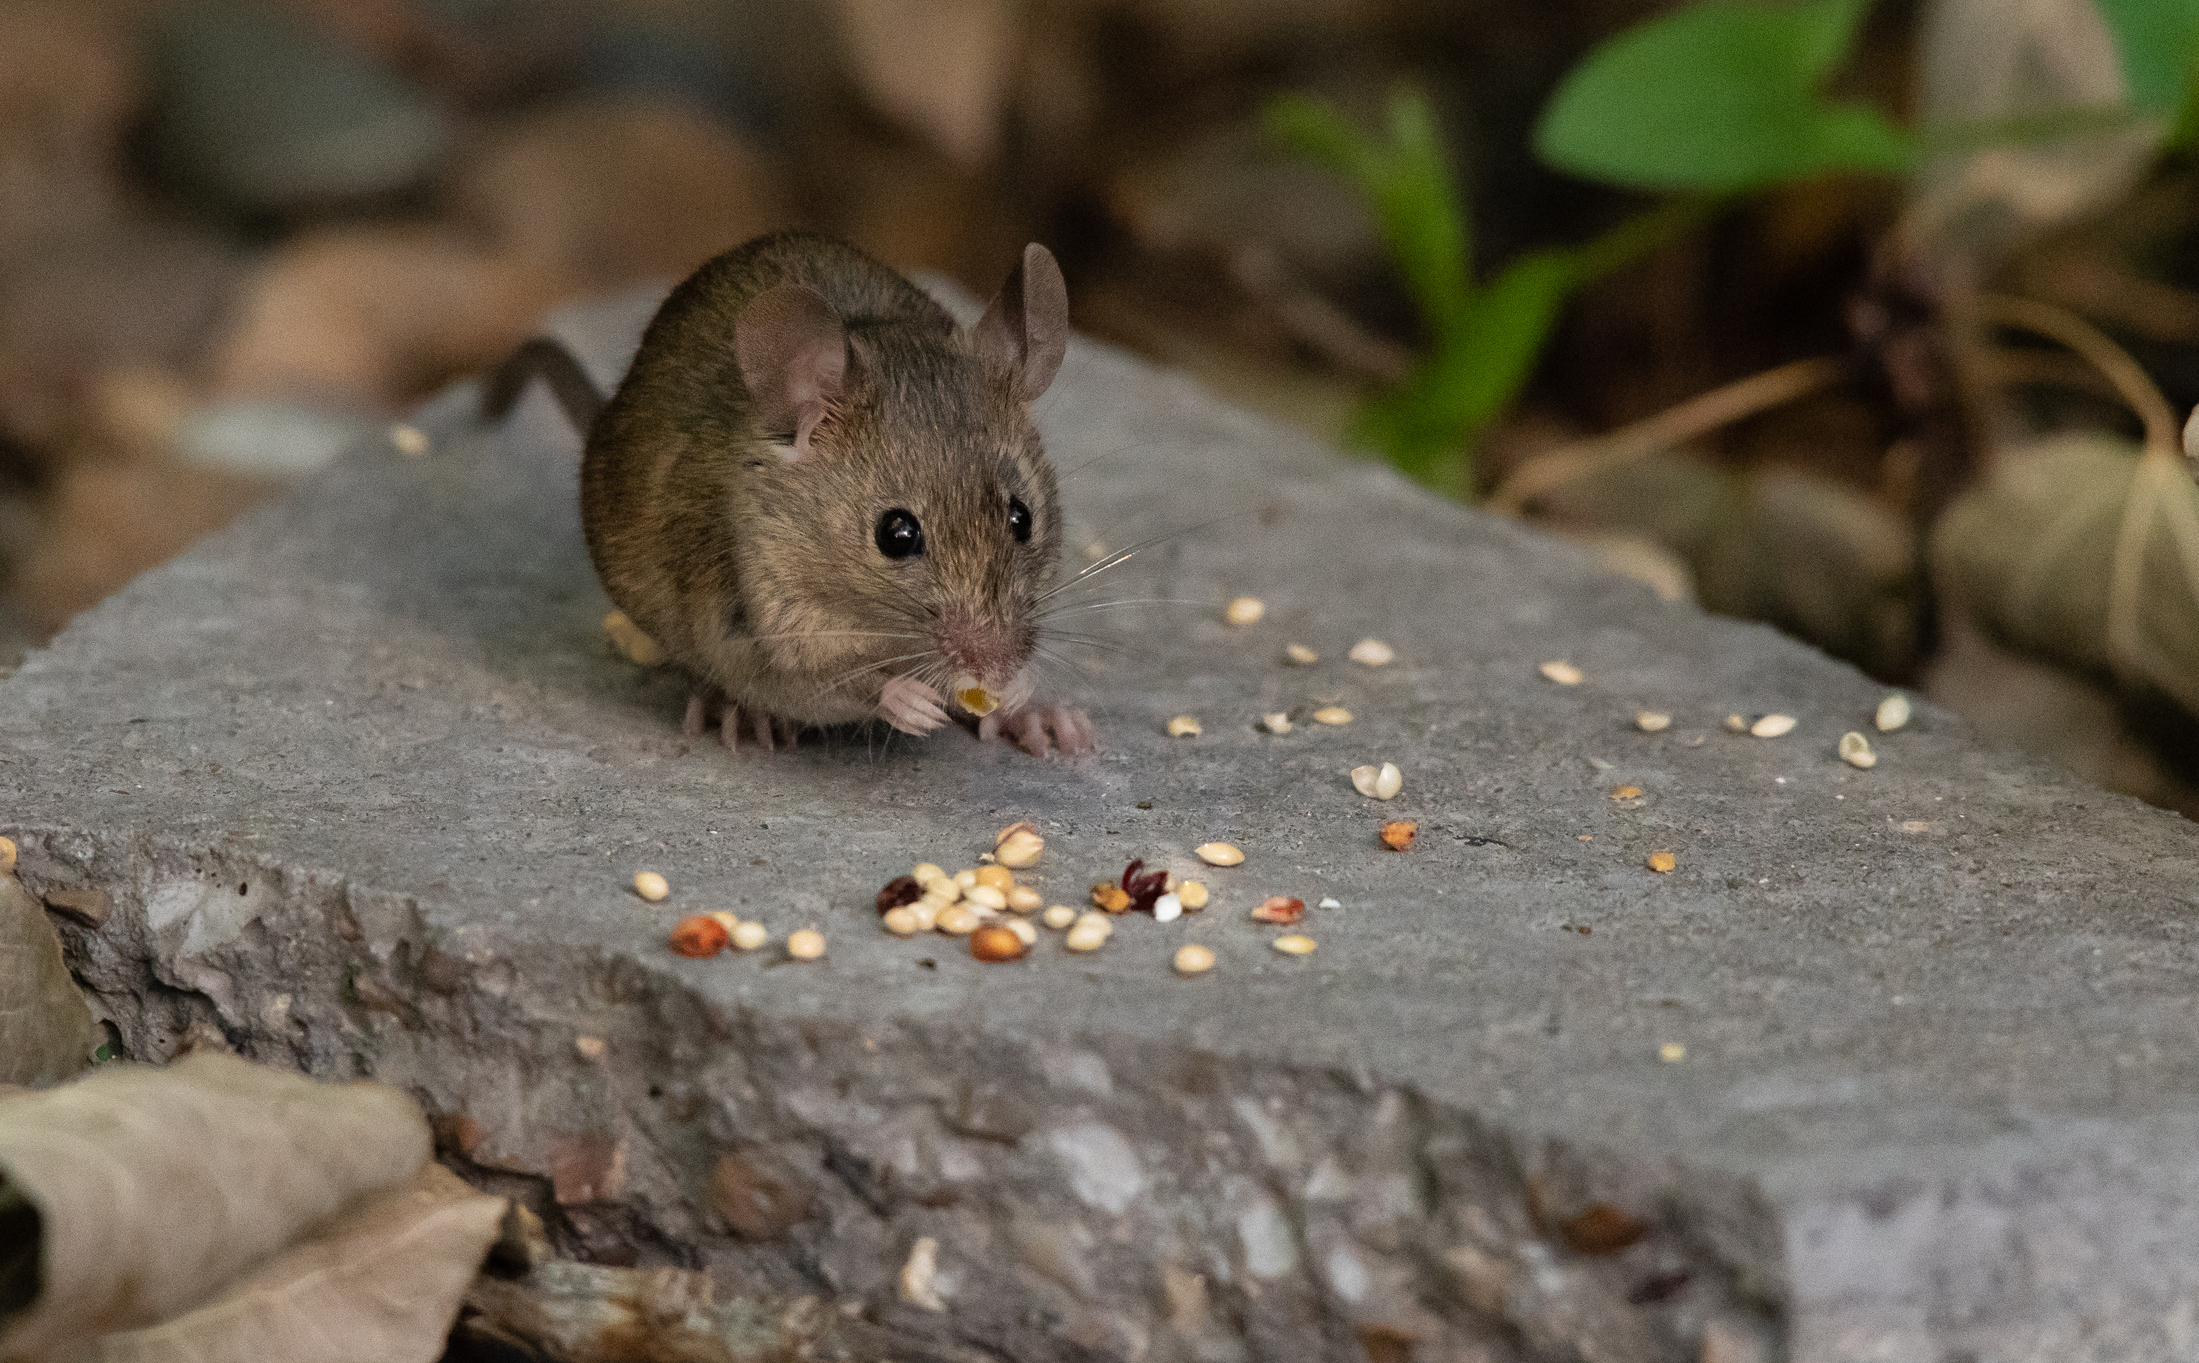 1607, 1607, A House Mouse Foraging on Birdseed, iStock-1183387238.jpg, 2213000, https://essentialys.com/wp-content/uploads/2021/02/iStock-1183387238.jpg, https://essentialys.com/lutte-prevention-rongeurs/a-house-mouse-foraging-on-birdseed/, , 6, , , a-house-mouse-foraging-on-birdseed, inherit, 1589, 2021-02-16 11:13:47, 2021-02-24 08:13:00, 0, image/jpeg, image, jpeg, https://essentialys.com/wp-includes/images/media/default.png, 2199, 1363, Array